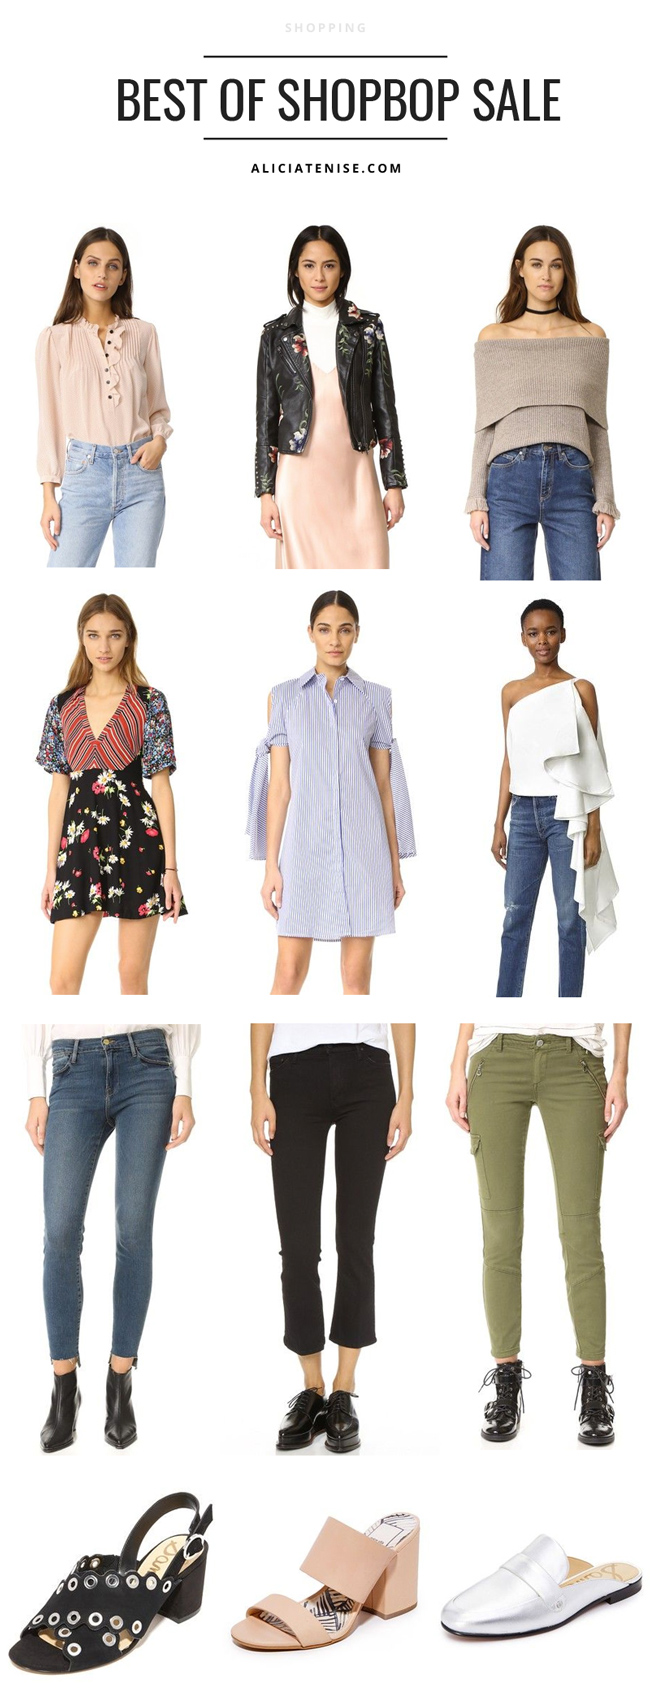 D.C. blogger Alicia Tenise shares her top fashion picks from the Shopbop Go Big Sale.